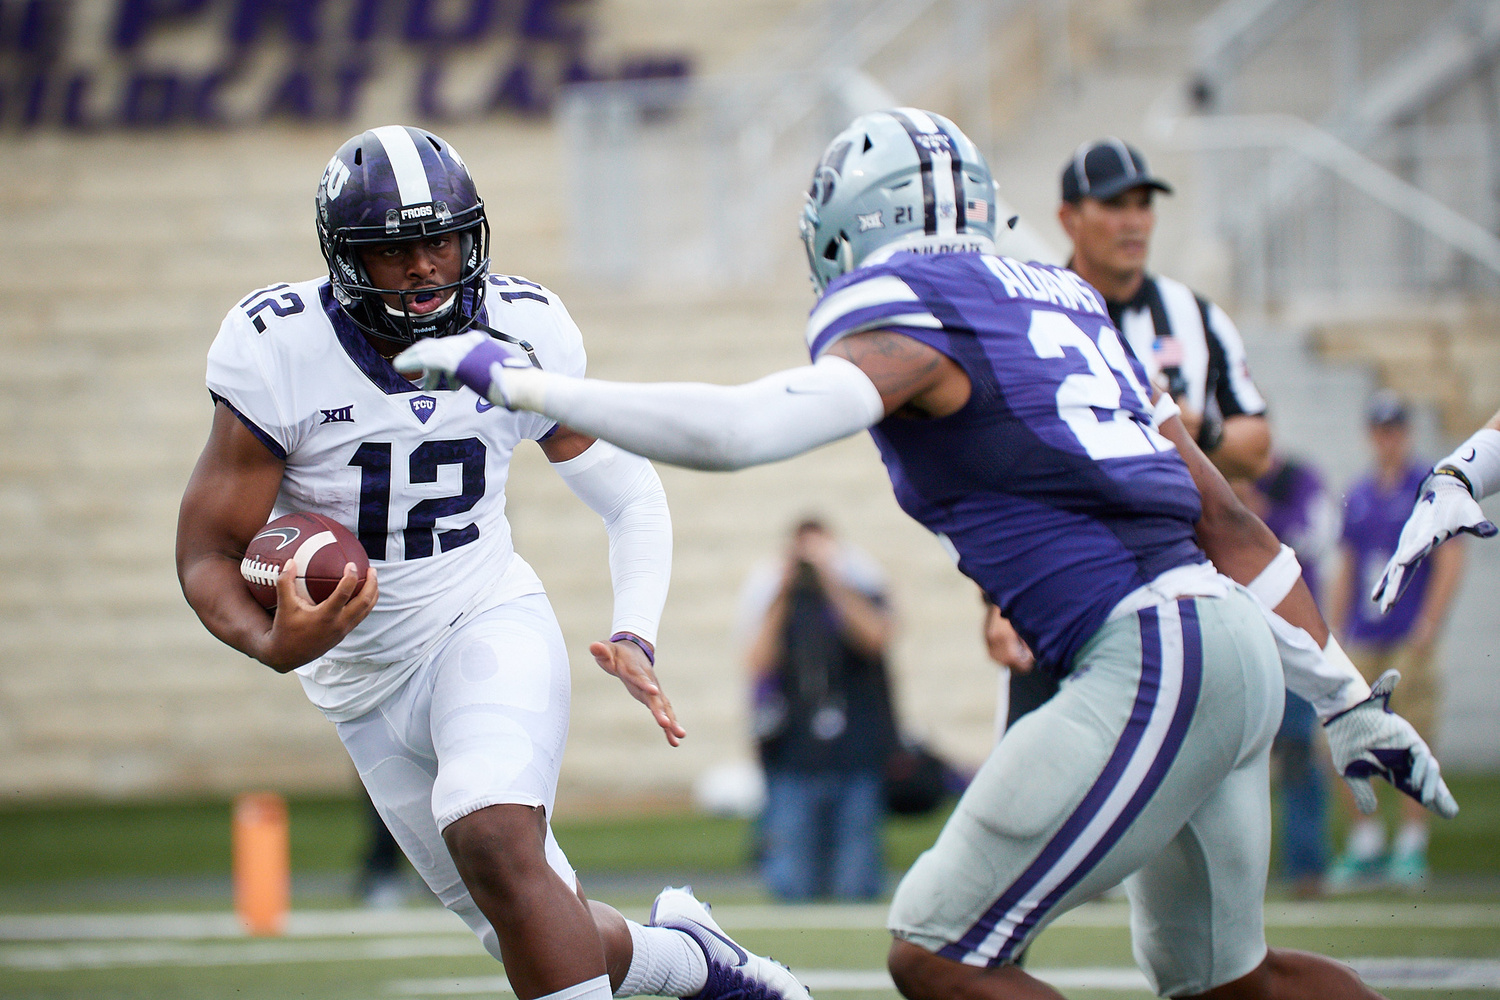 KSU/TCU Football by Kaden Classen